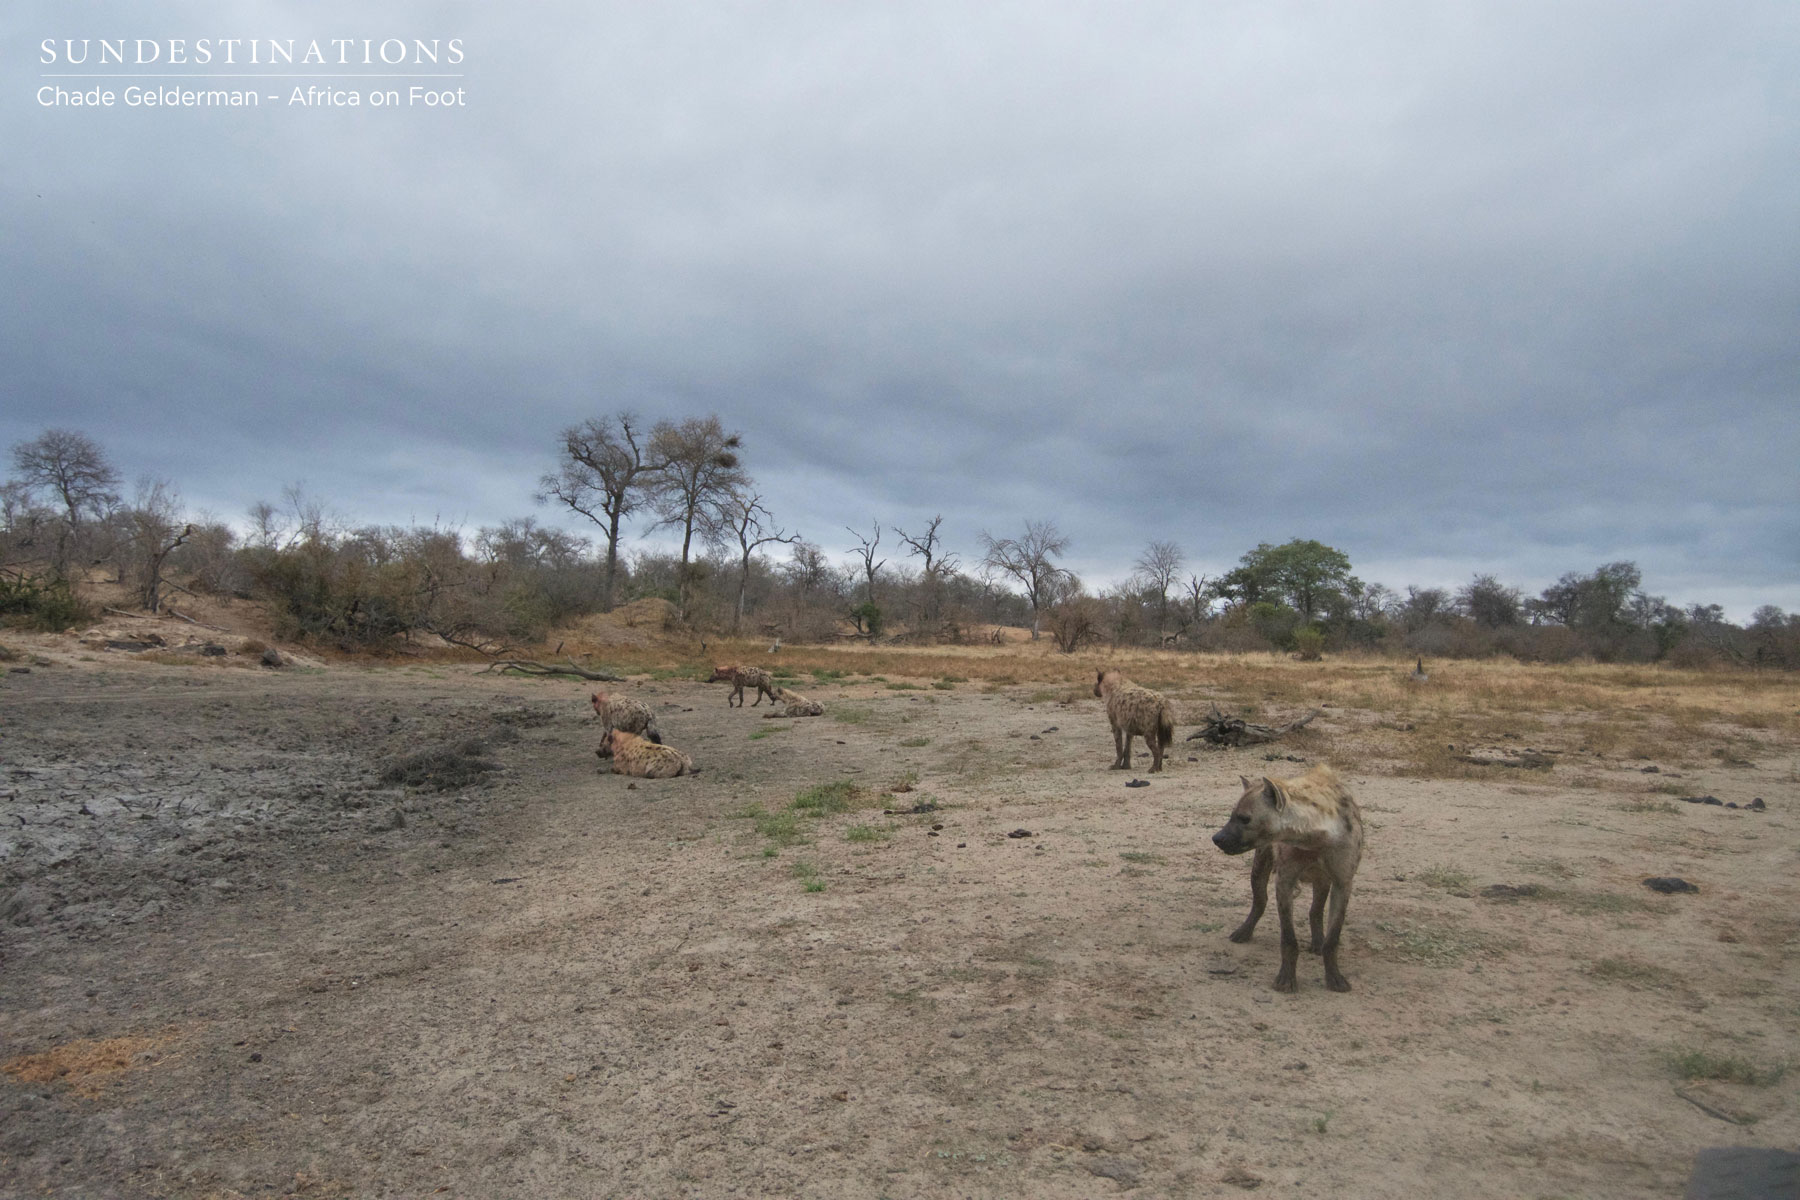 Clans of Hyena